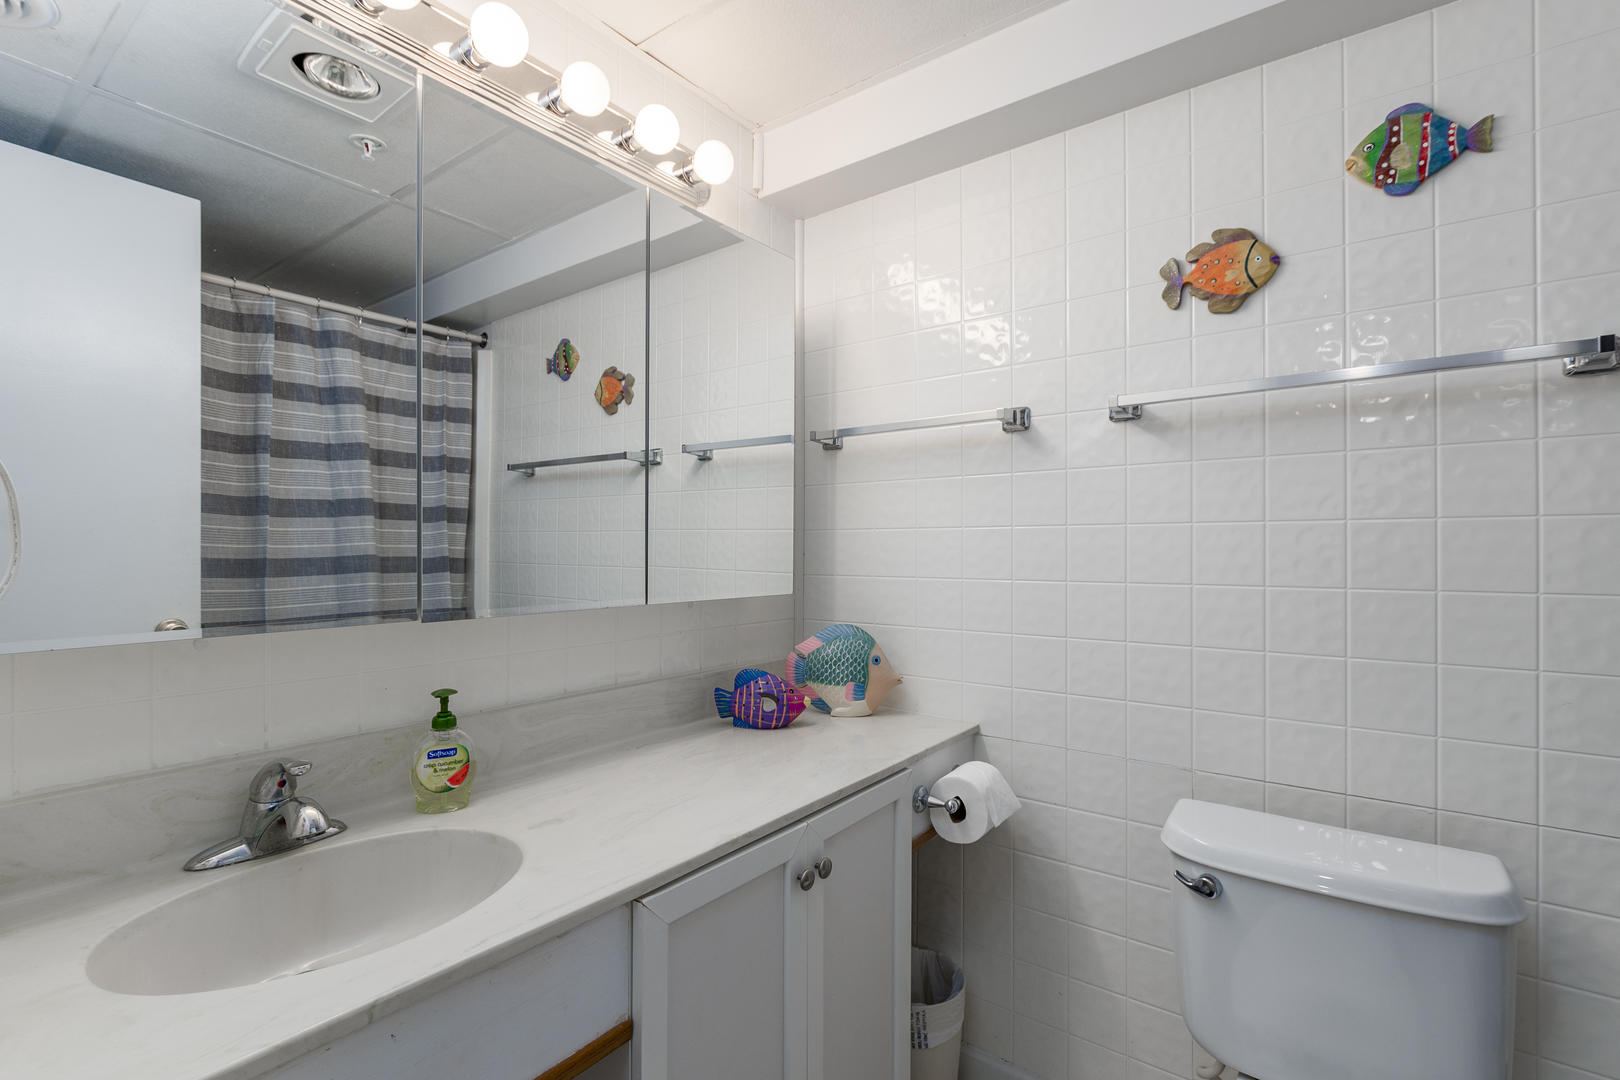 Summer Beach 407 - Bathroom 2